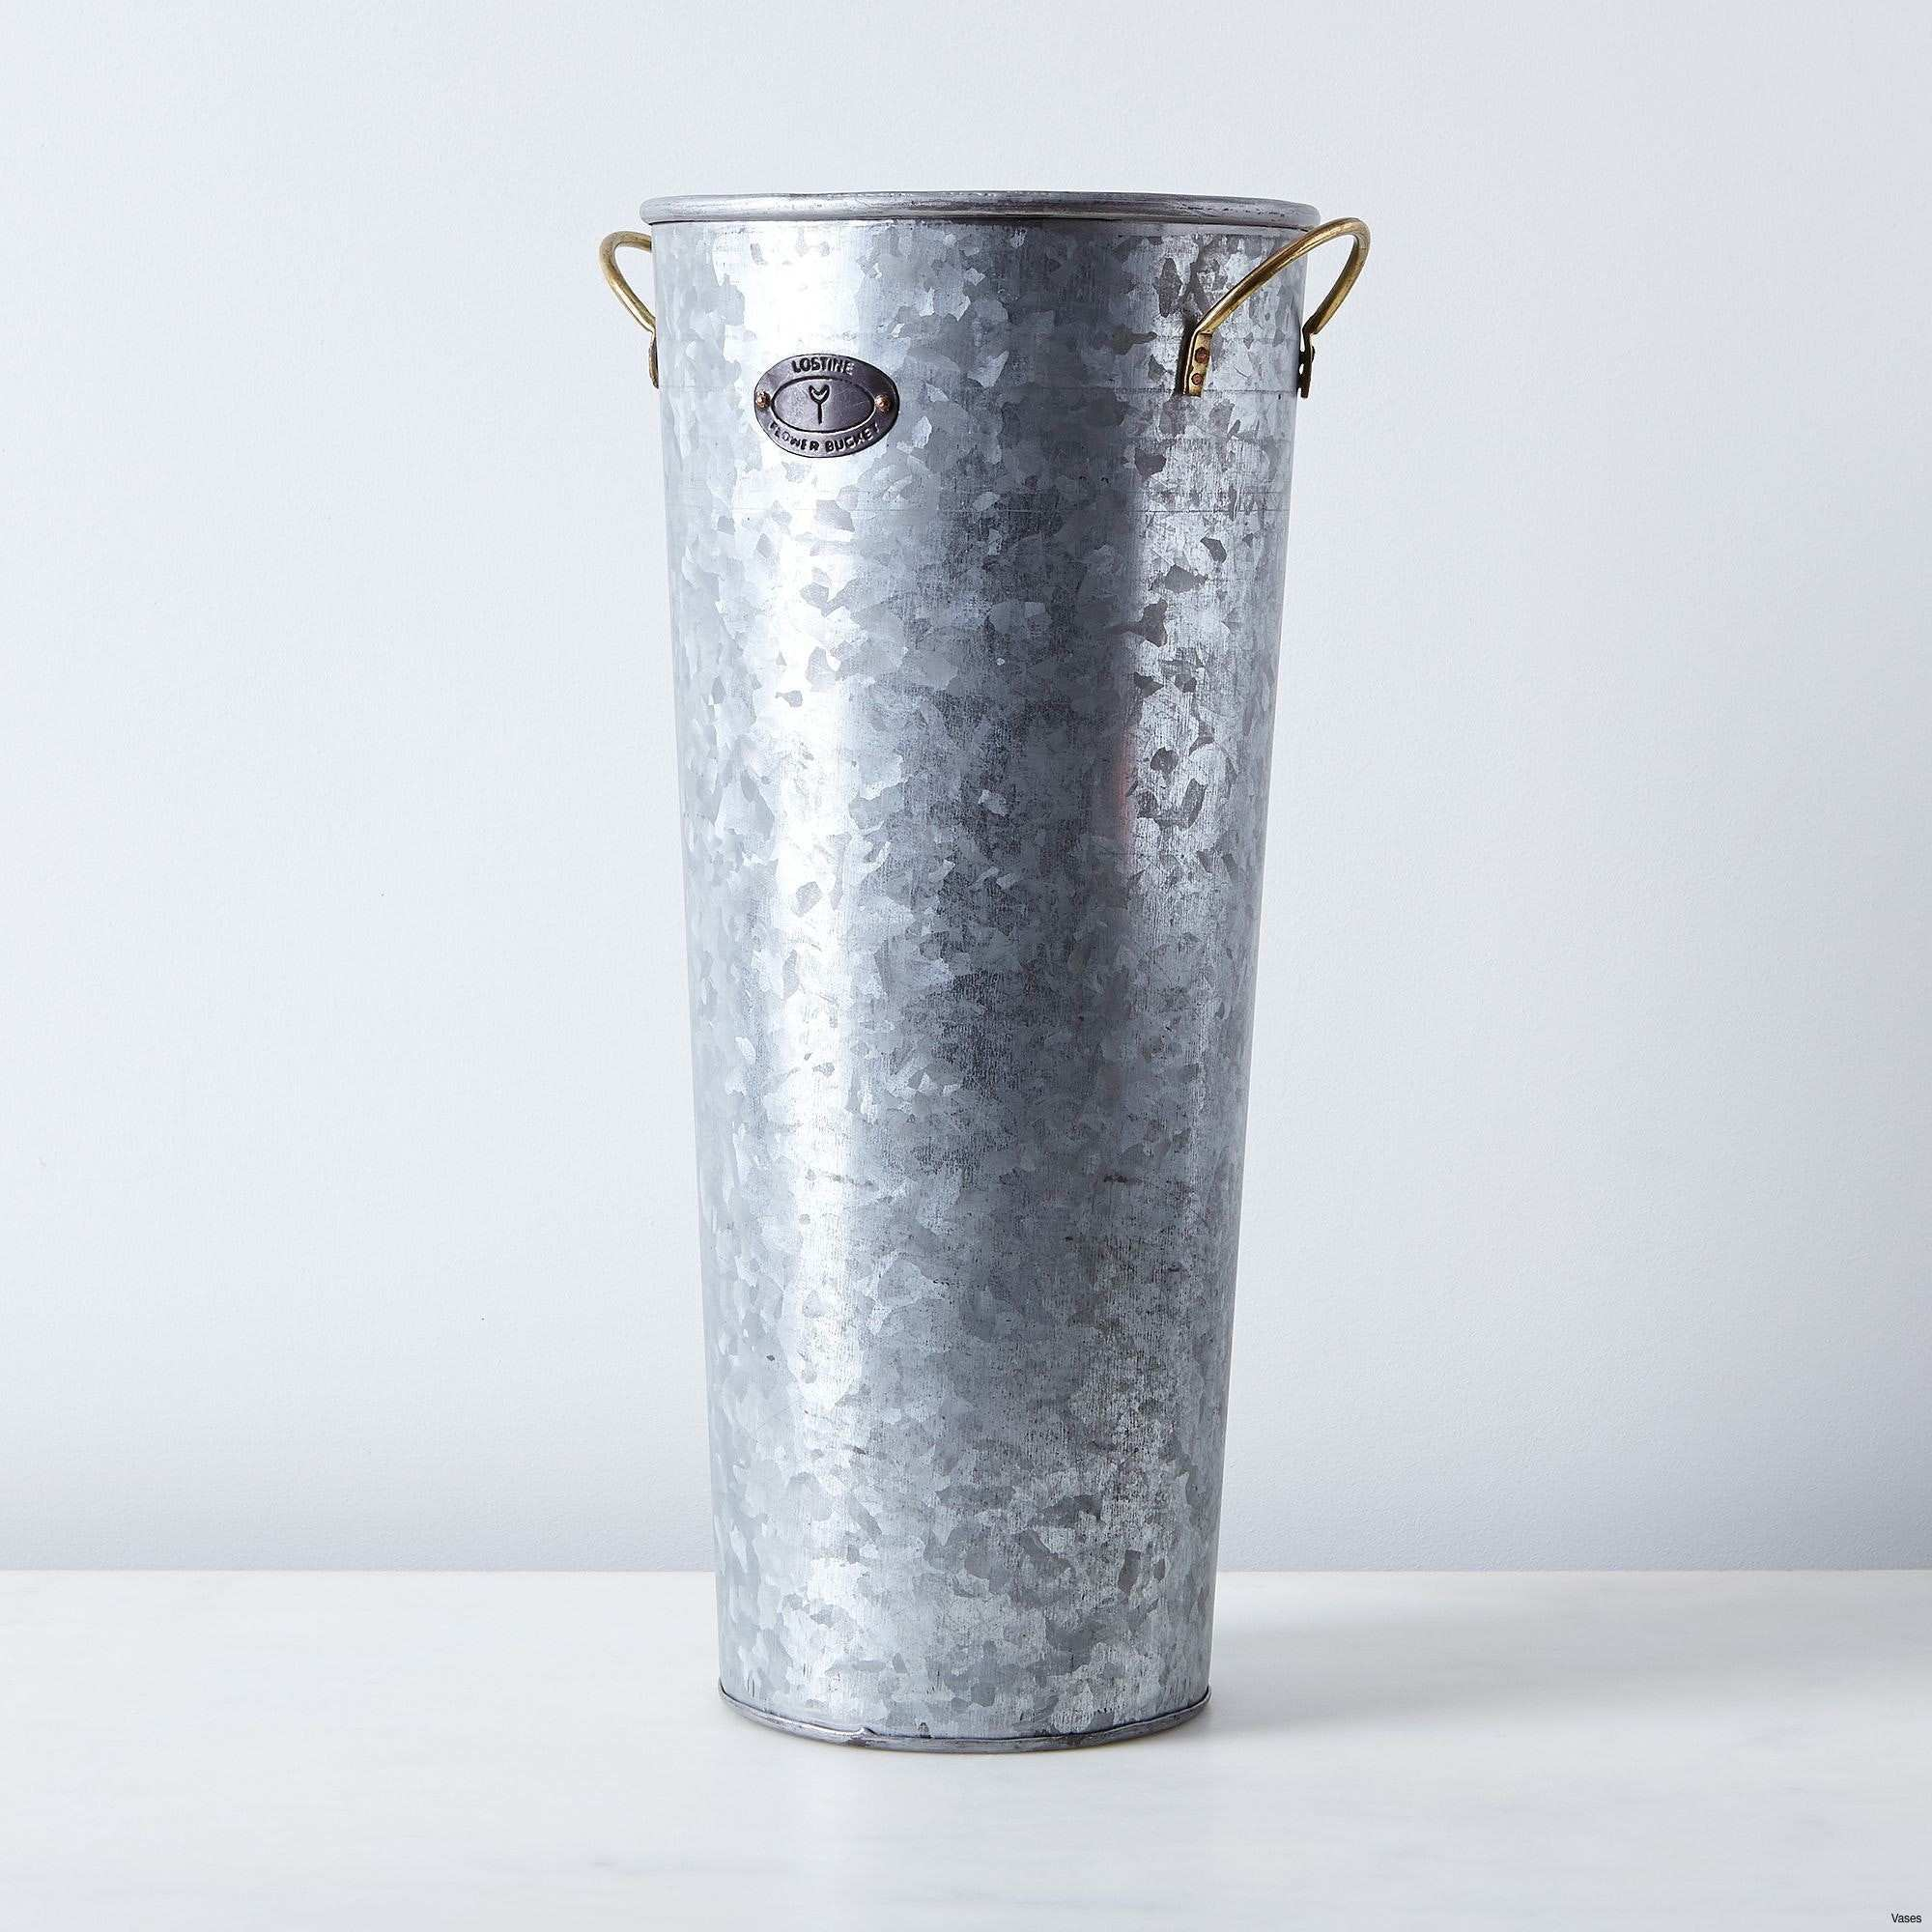 Galvanized Metal Vase Awesome 611qyvaa5ql Sl1200 H Vases Galvanized